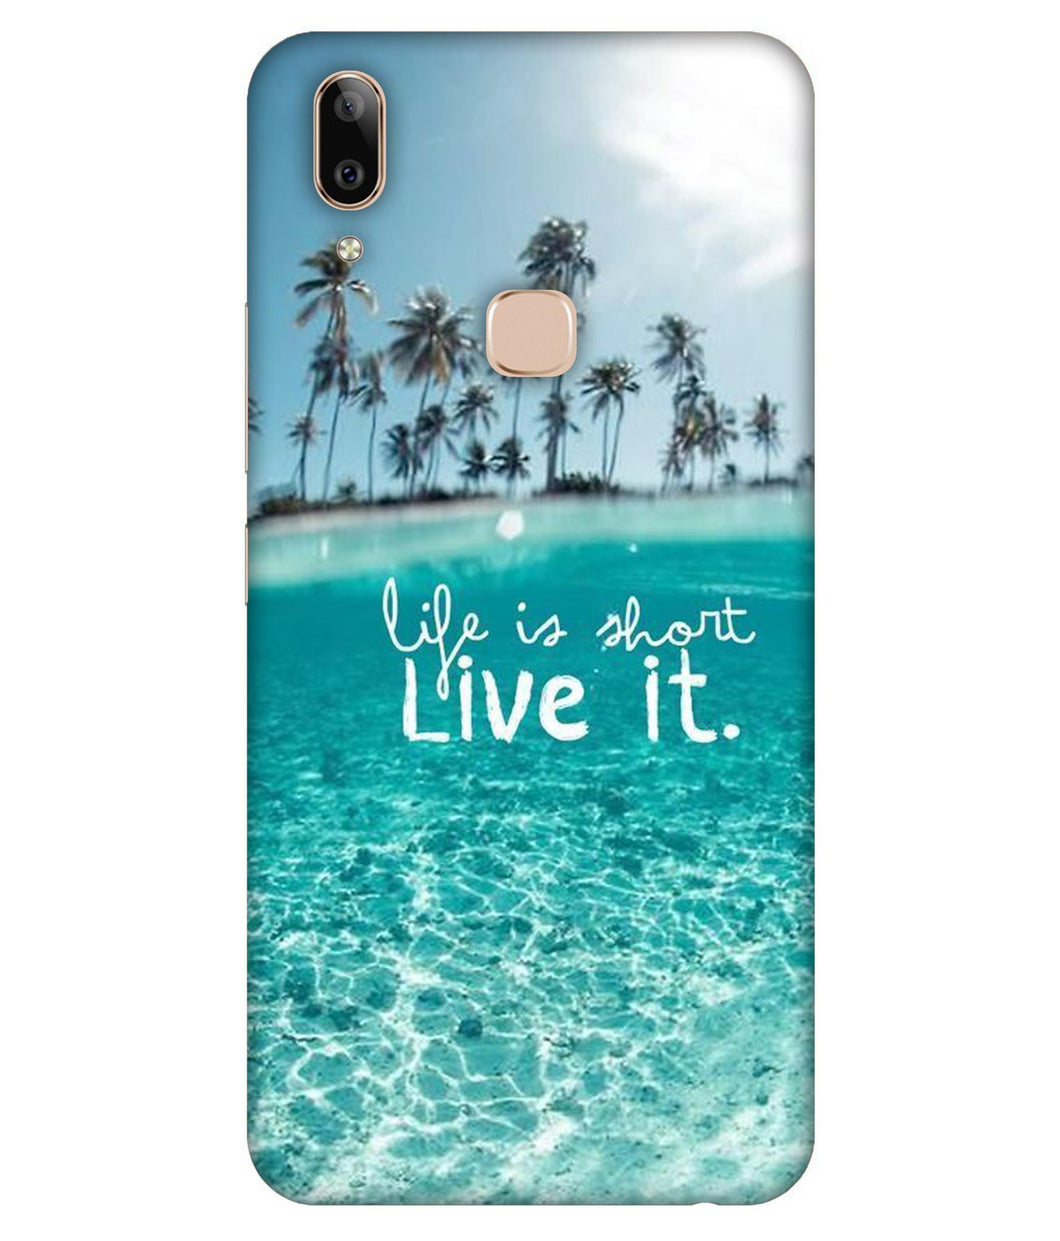 Vivo V9 Live Life mobile cover